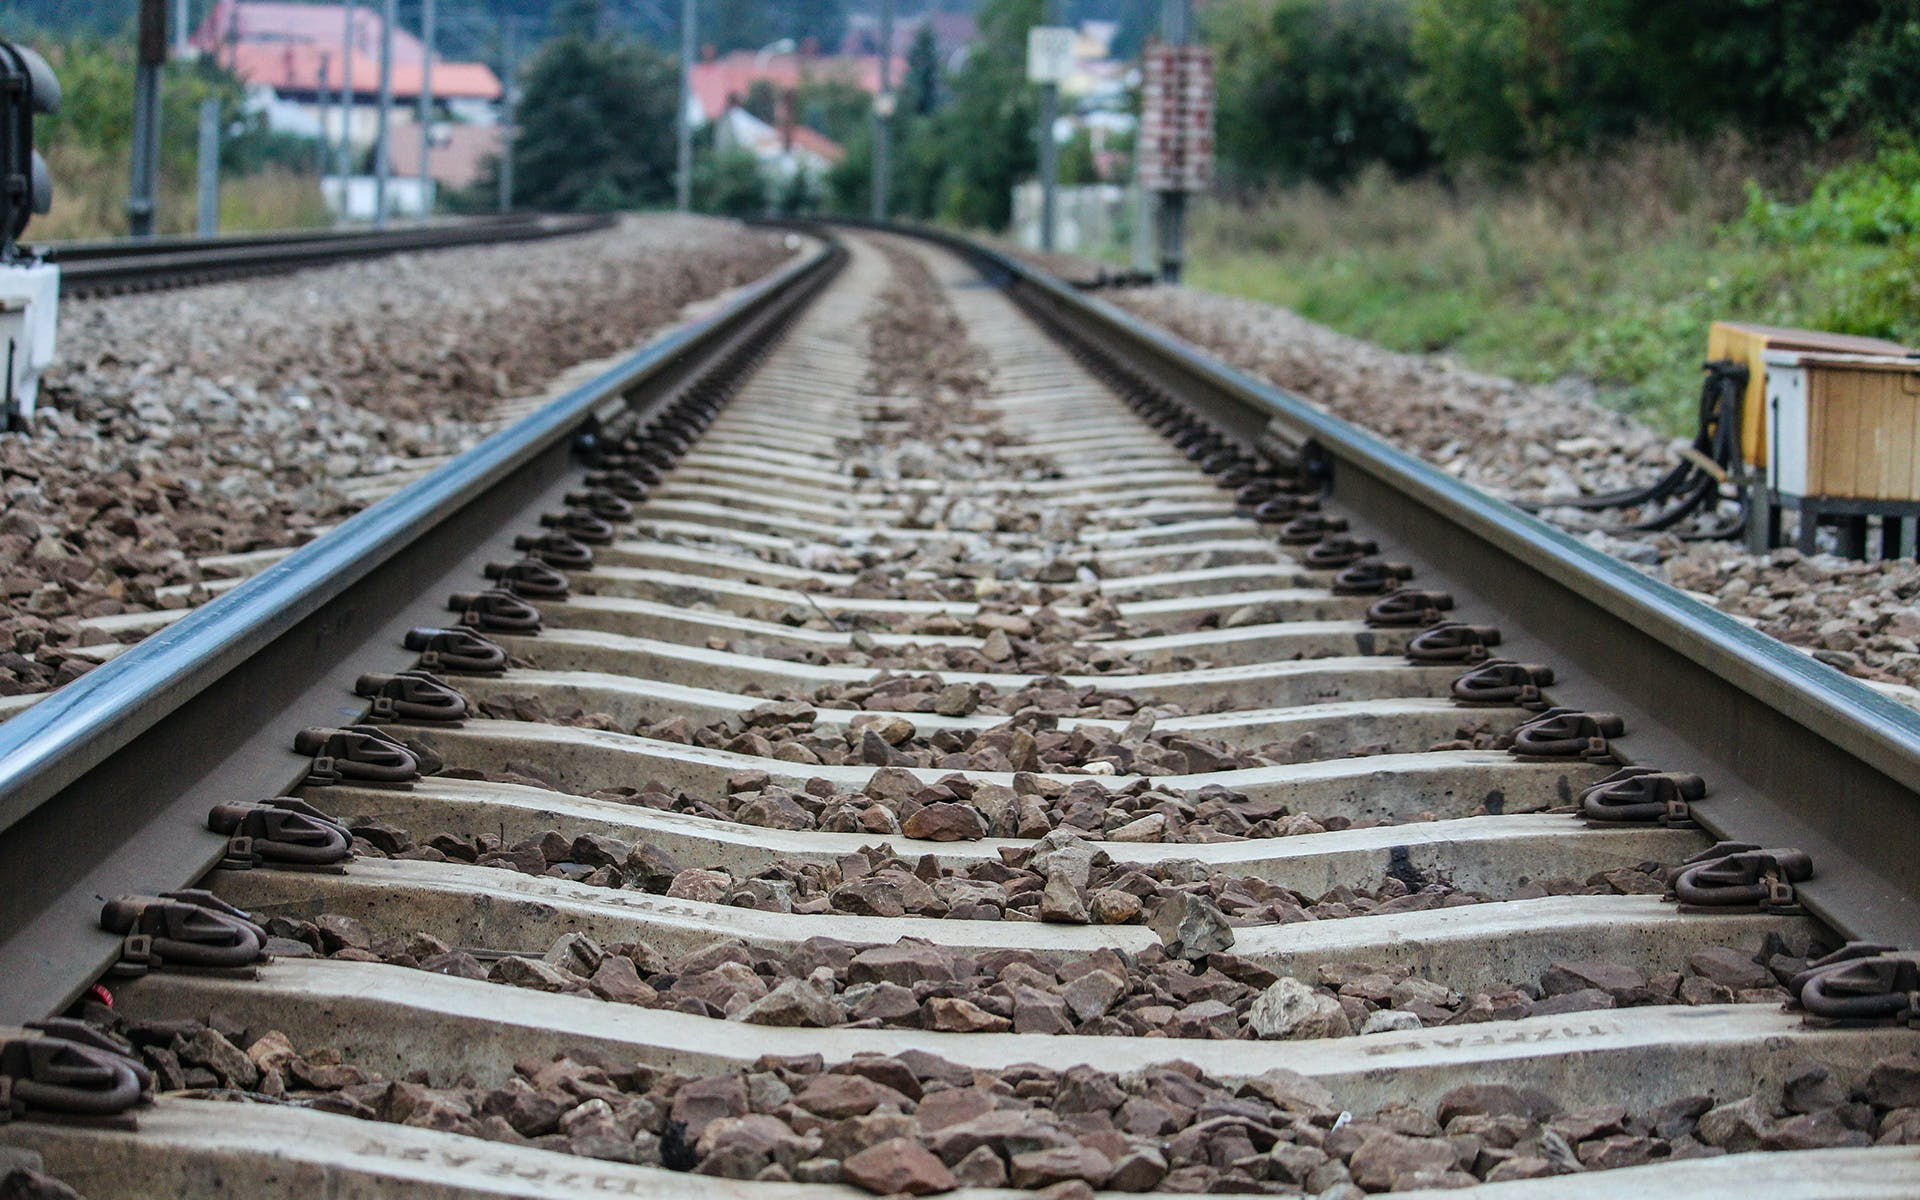 Close-up Photography of Train Rails